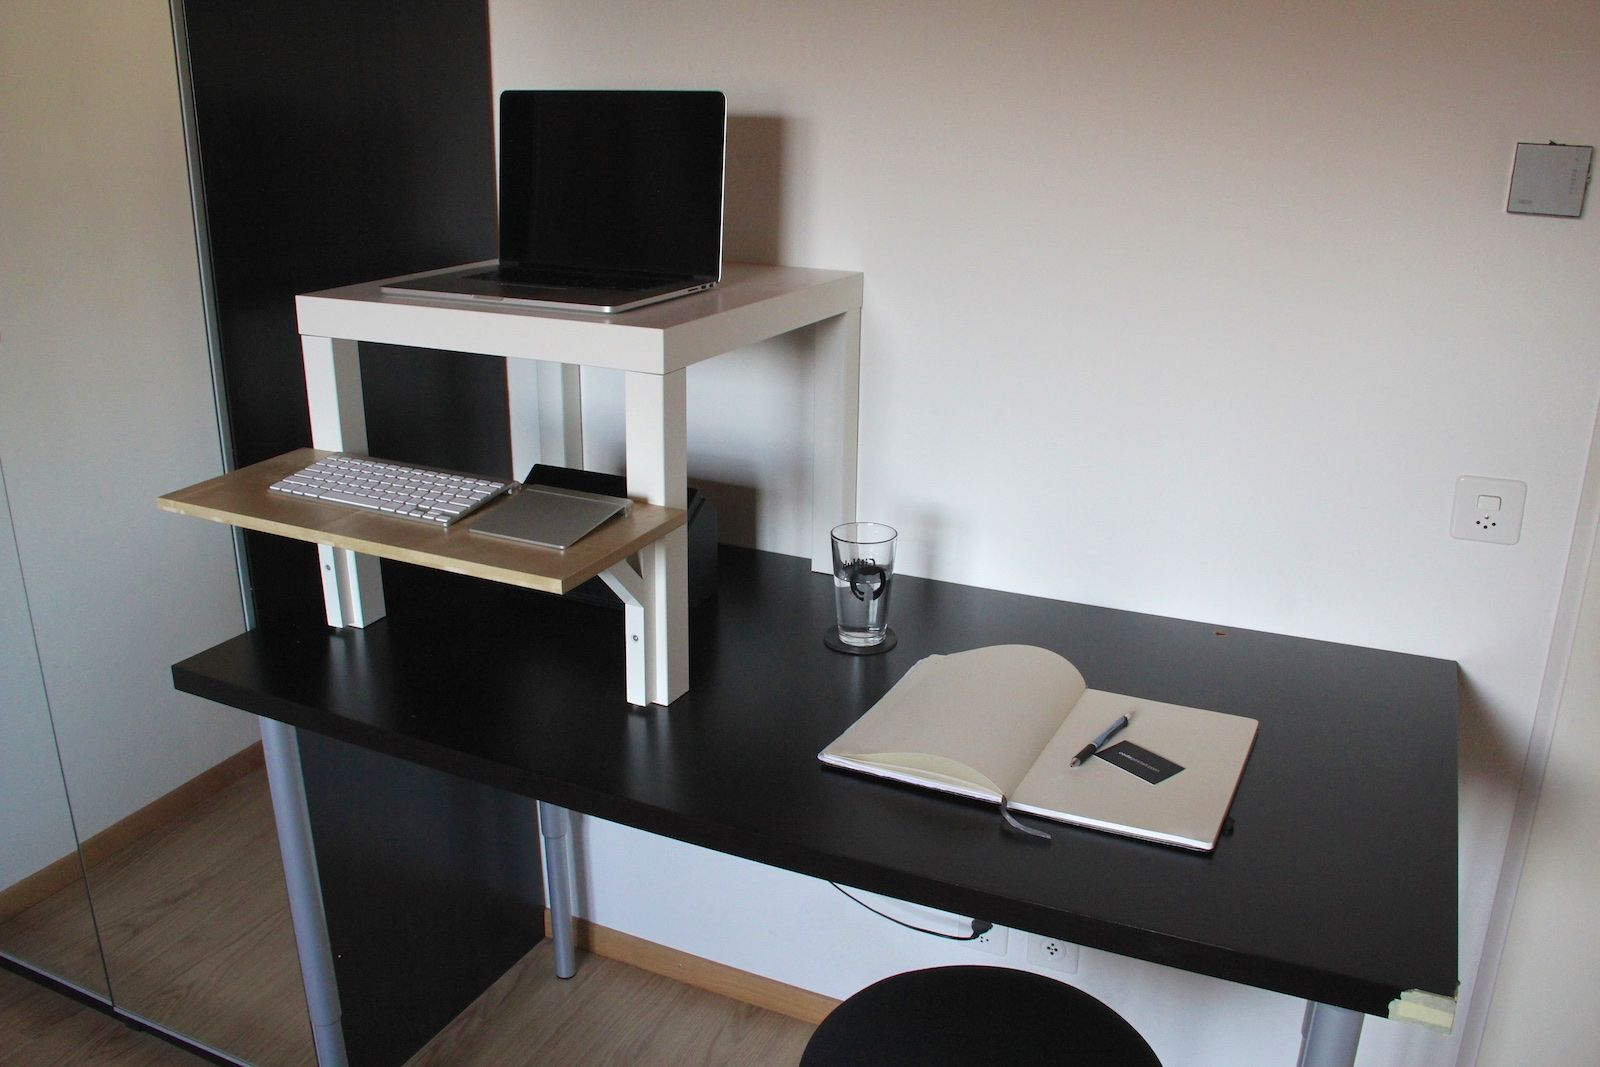 Bureau Vloermat Ikea.Diy Ikea Standing Desk With A Kybounder Mat To Train My Muscles And